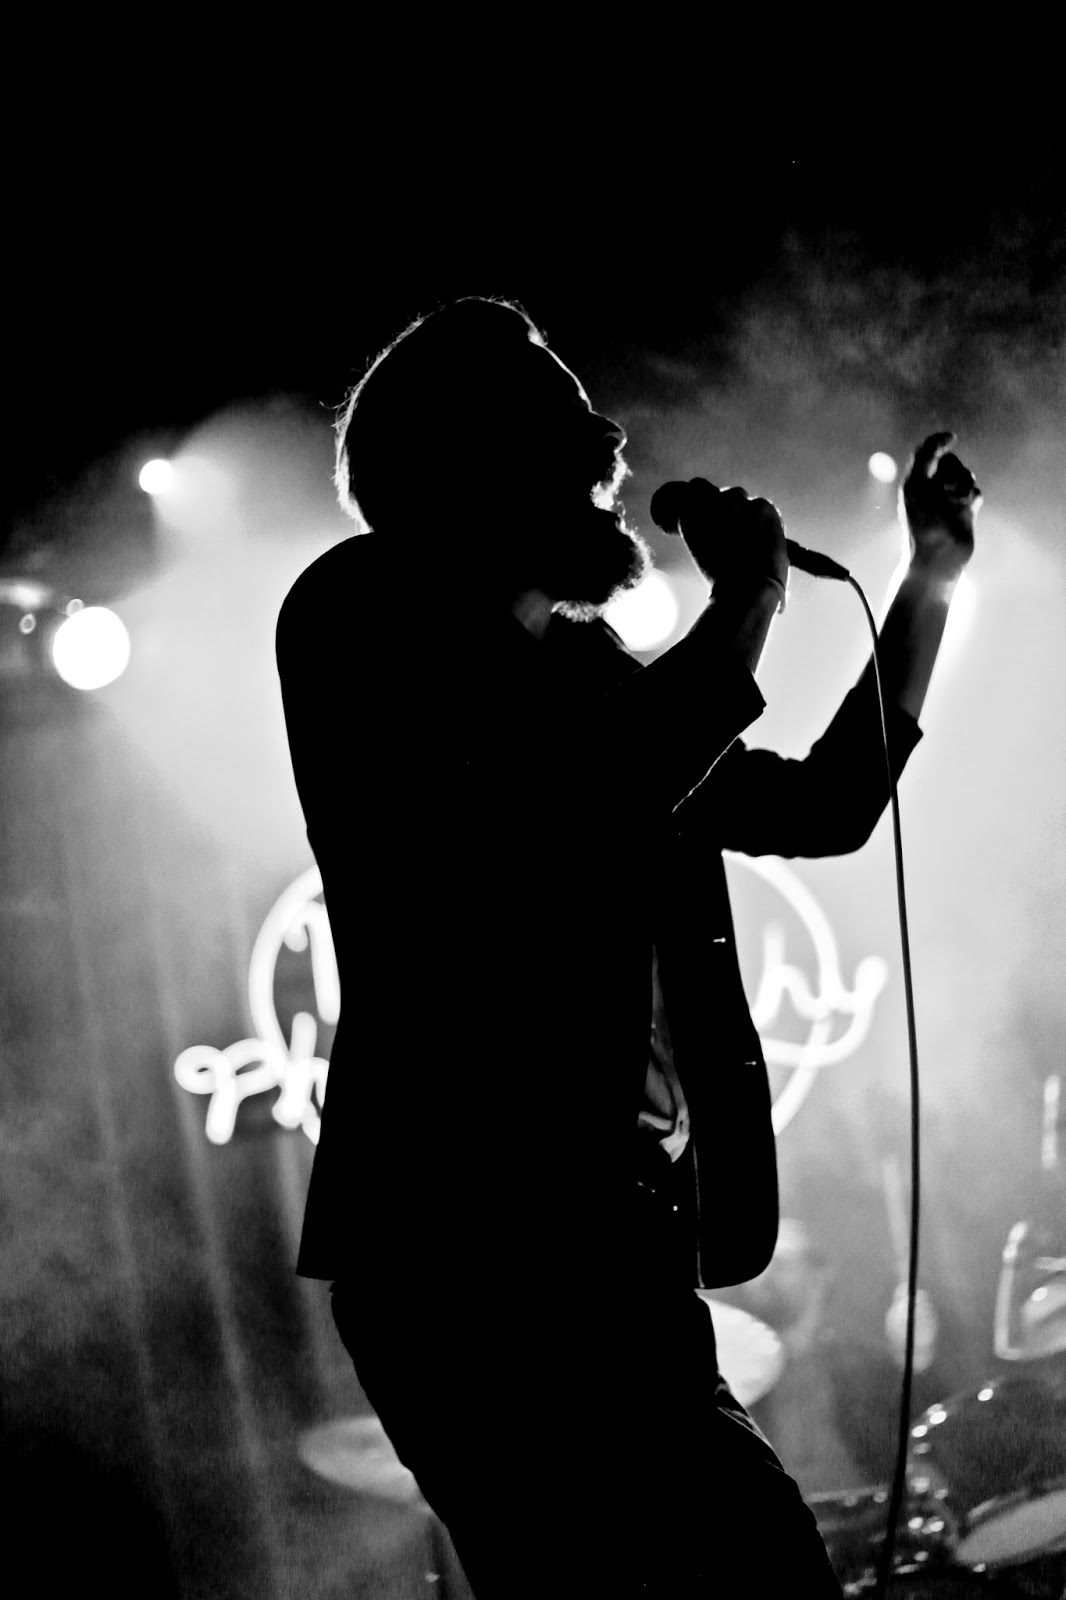 The silhouette of Joshua Tillman on stage at the Ogden Theatre.